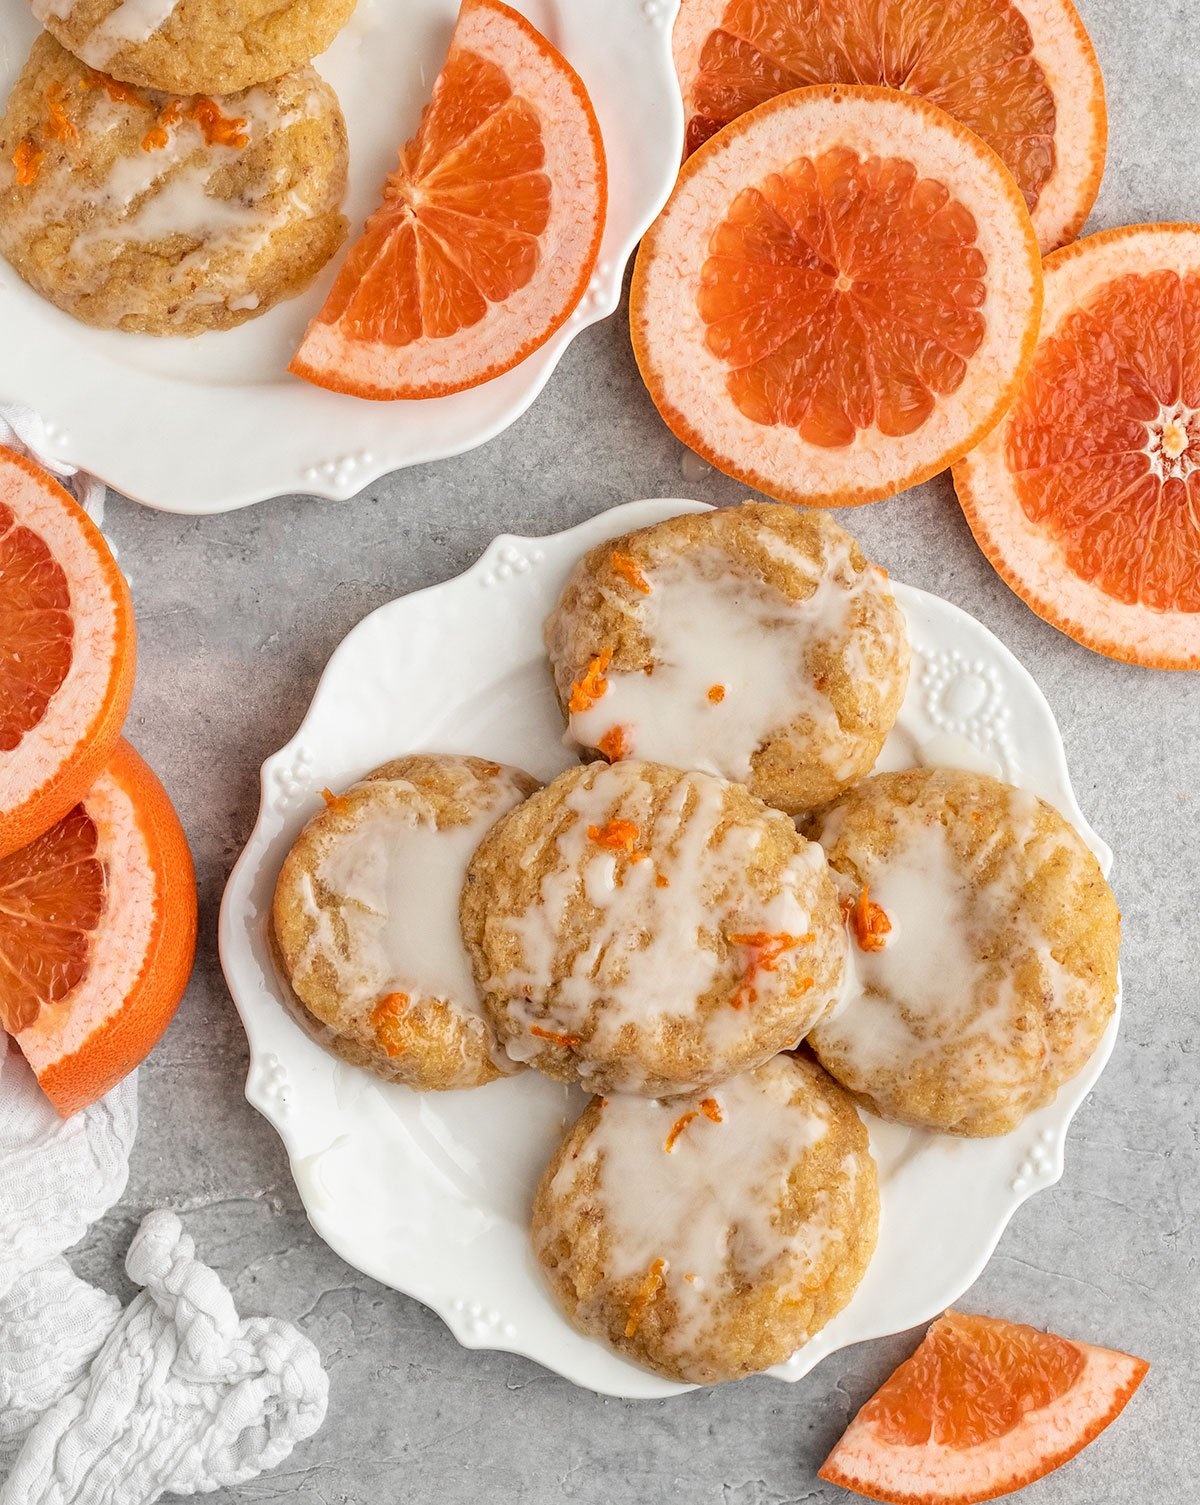 plate of grapefruit cookies with fresh grapefruit slices, zest, and icing on top